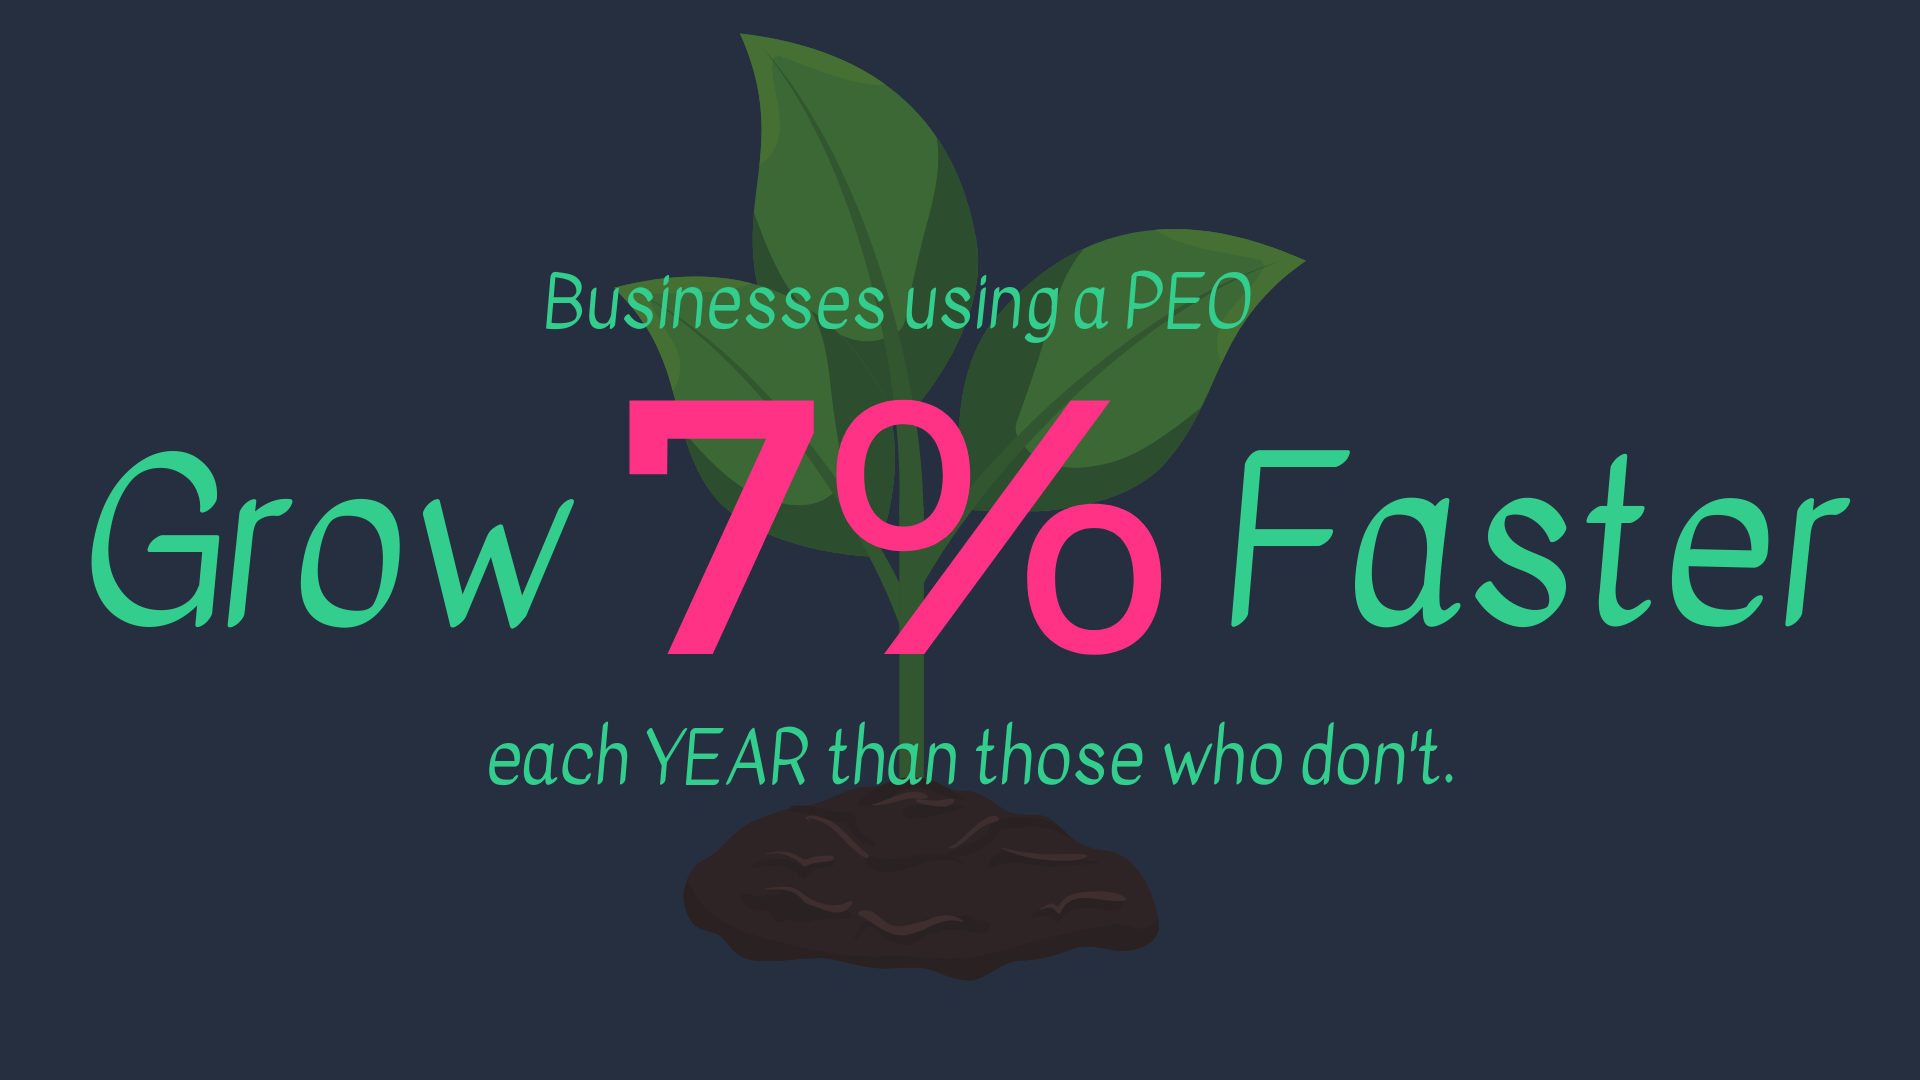 Businesses using a PEO grow 7% faster annually than those who don't infographic